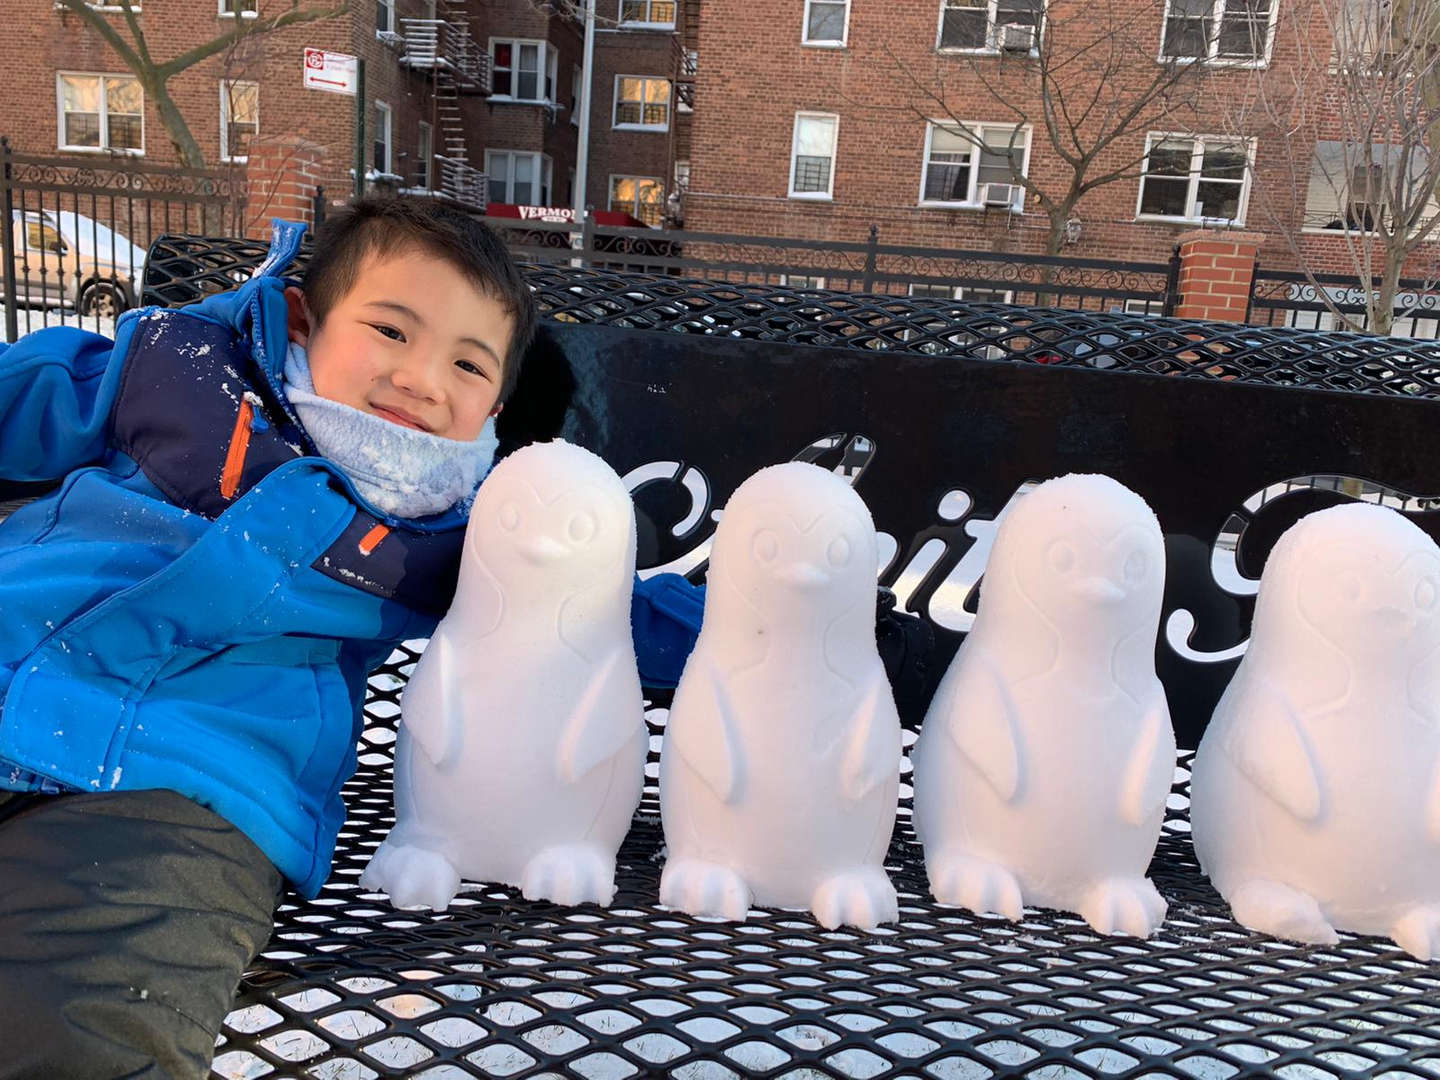 a boy with four little snow figures